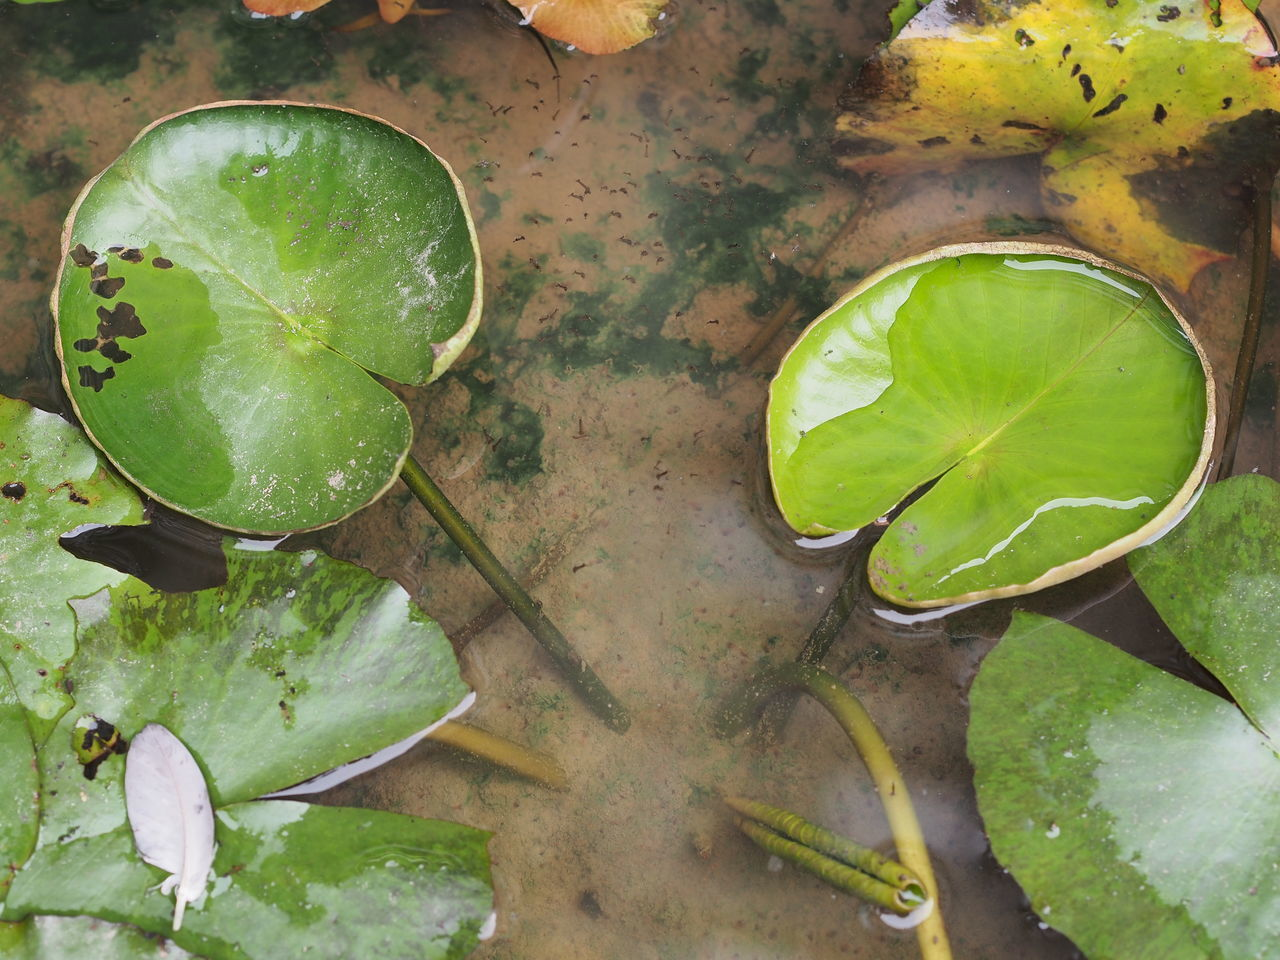 leaf, green color, high angle view, no people, water, freshness, directly above, water lily, close-up, drinking glass, lily pad, nature, indoors, healthy eating, day